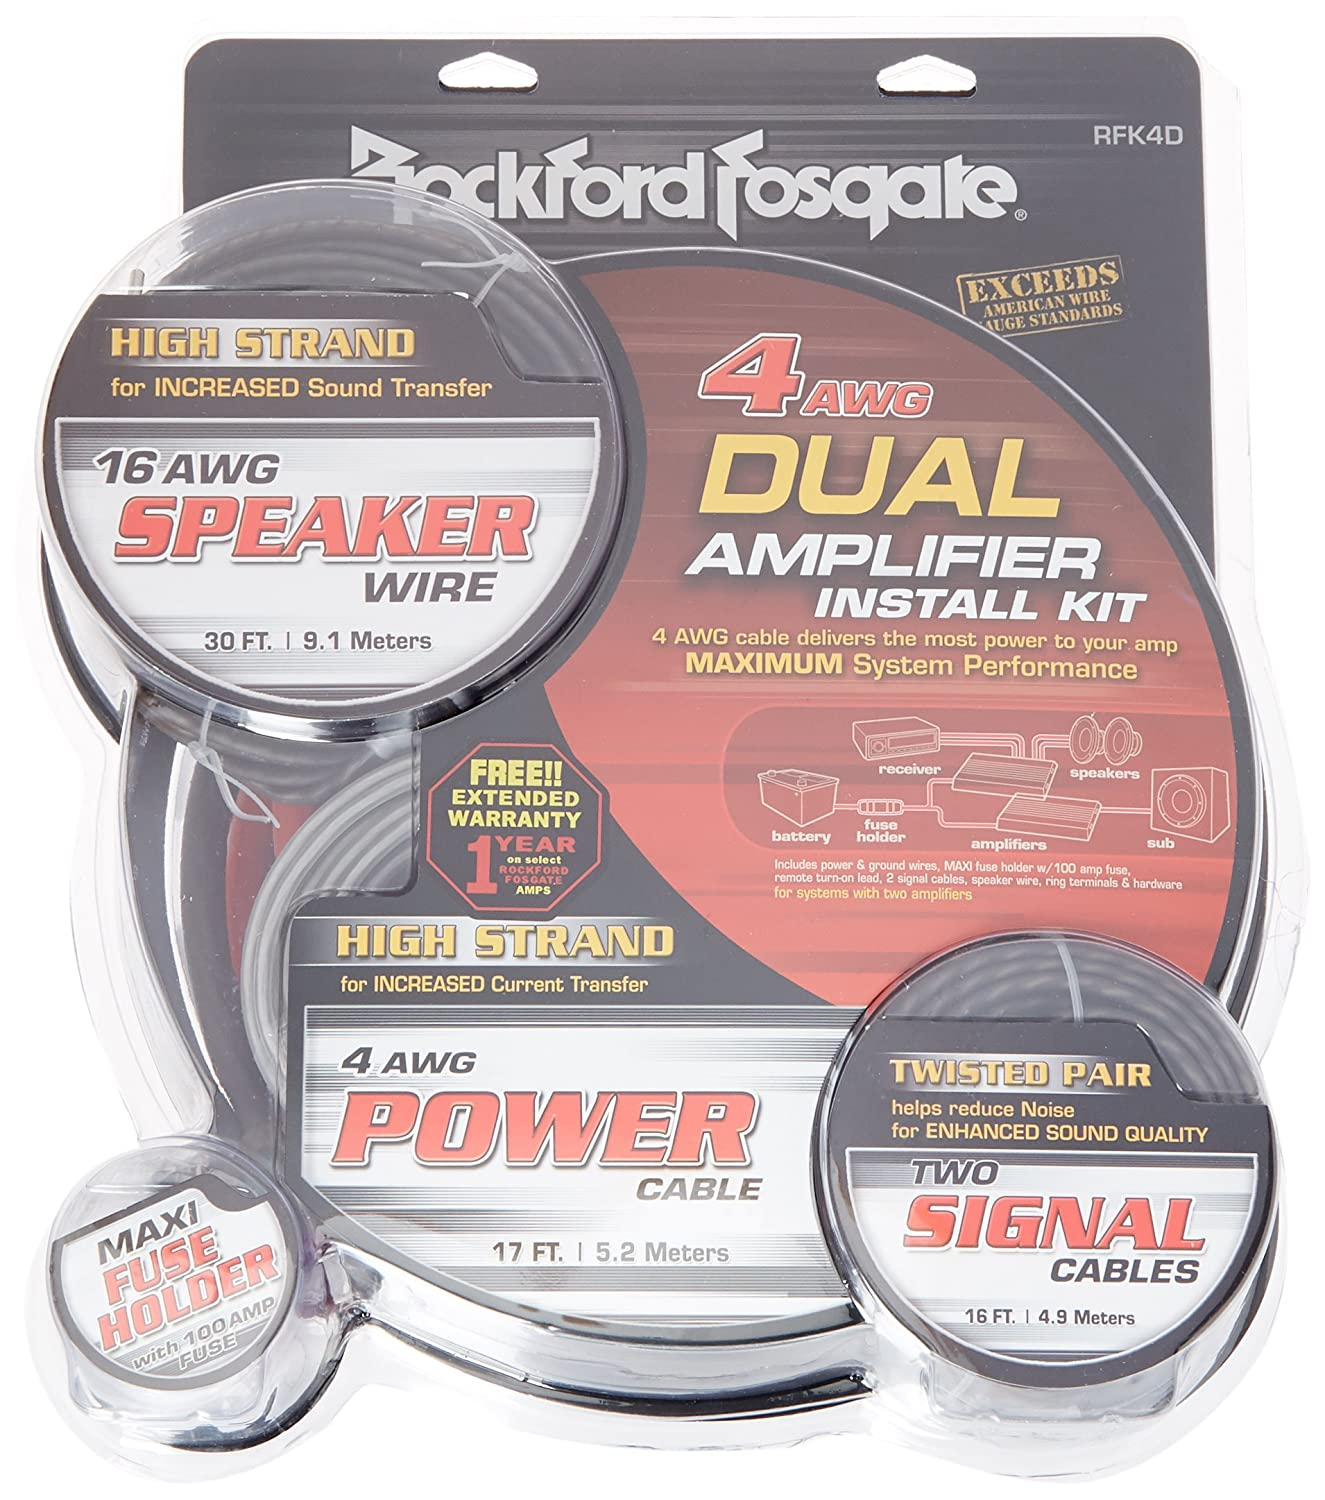 Rockford Fosgate Rfk1d Dual Amp Complete Kit Car Amps Wiring Electronics